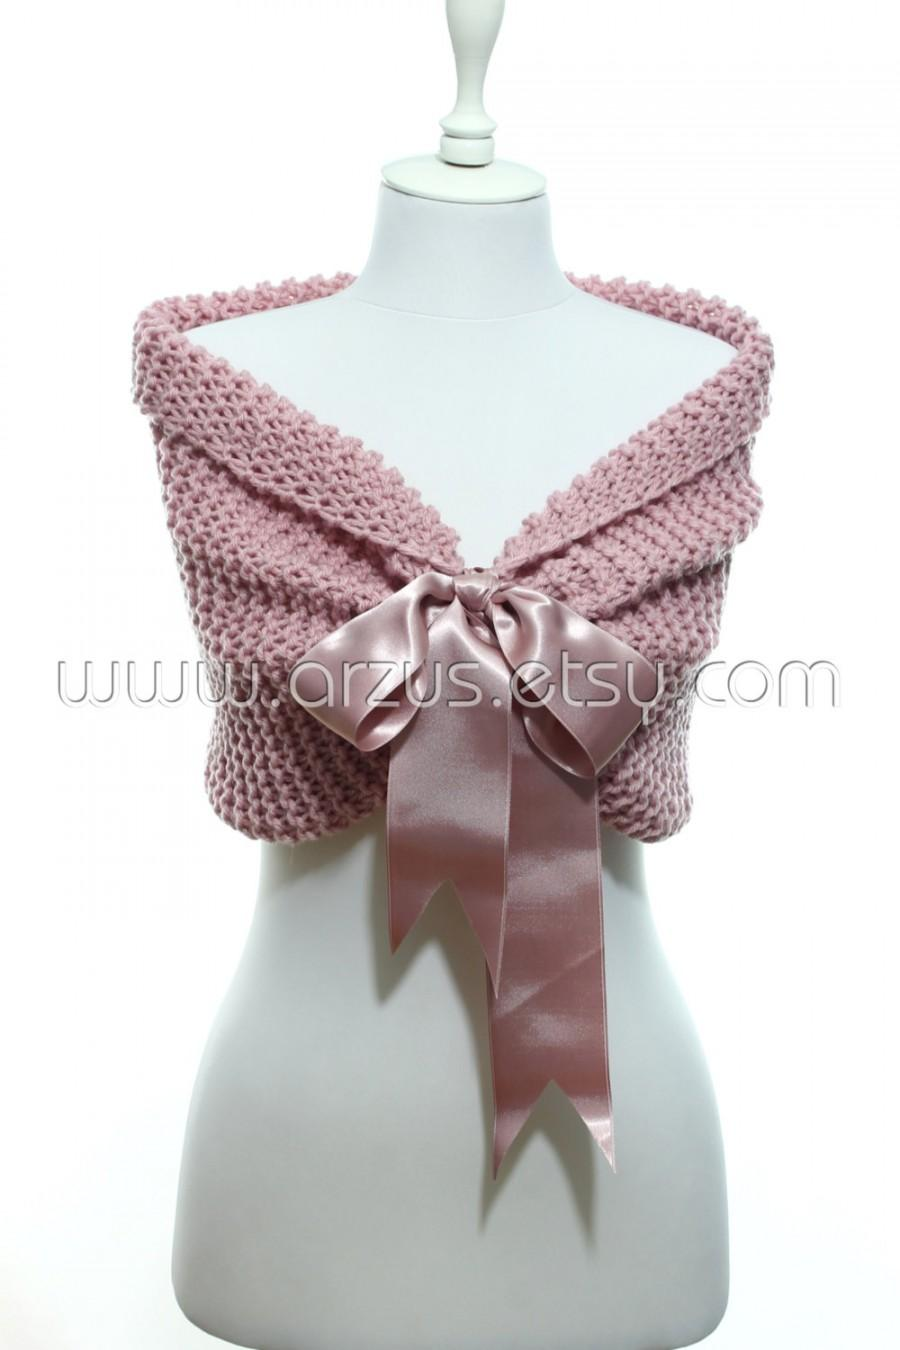 Wedding - Wedding Shawl Bridal Shawl Bridal Wedding Cape Nude Pink Shawl Hand Knit Shawl Rose Cape Wedding Capelet Shrug Bolero Bridesmaids Gift Shawl